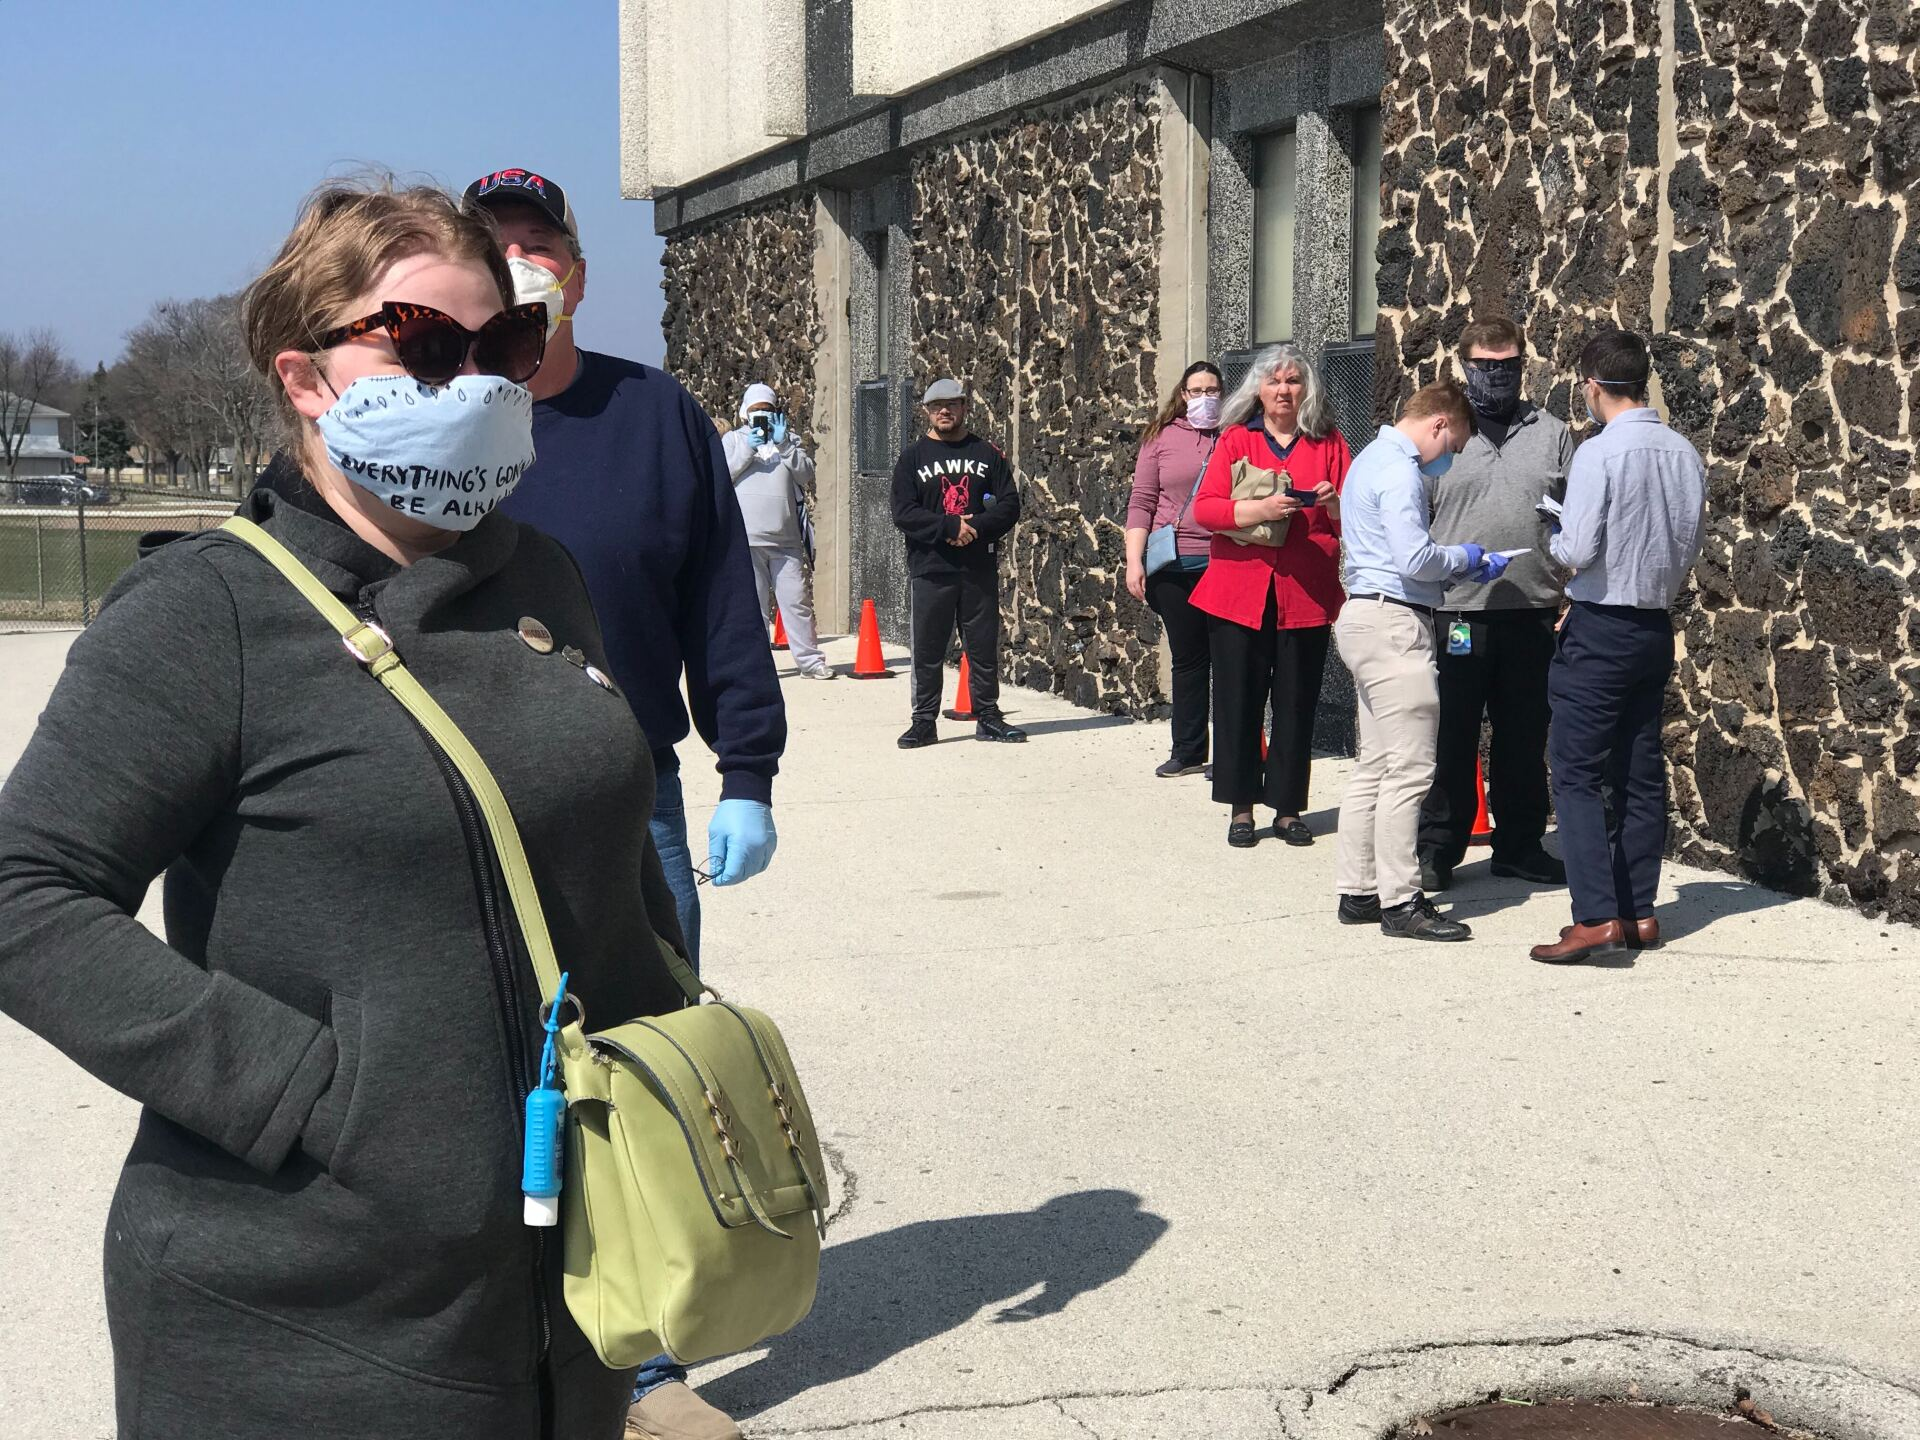 Wisconsin's spring election continues on despite coronavirus pandemic [PHOTOS]